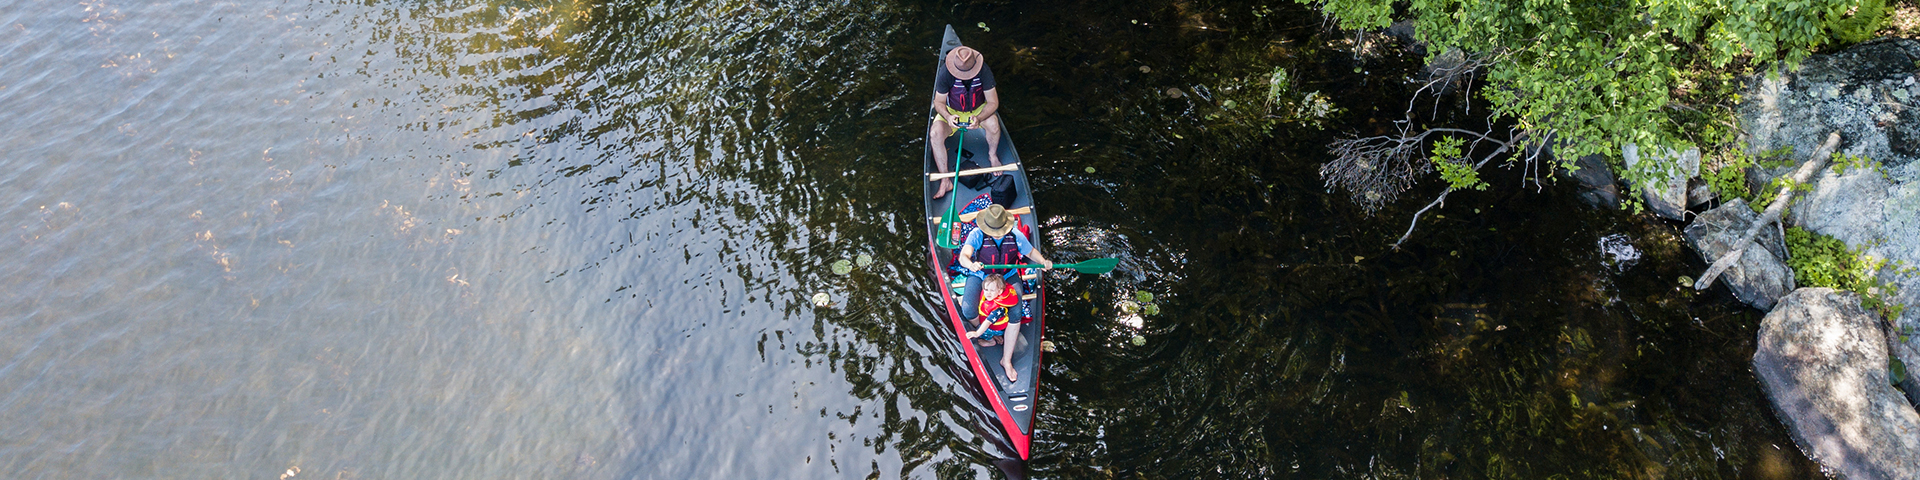 Canoes: Discovery 133 by Old Town Canoes and Kayaks - Image 3898